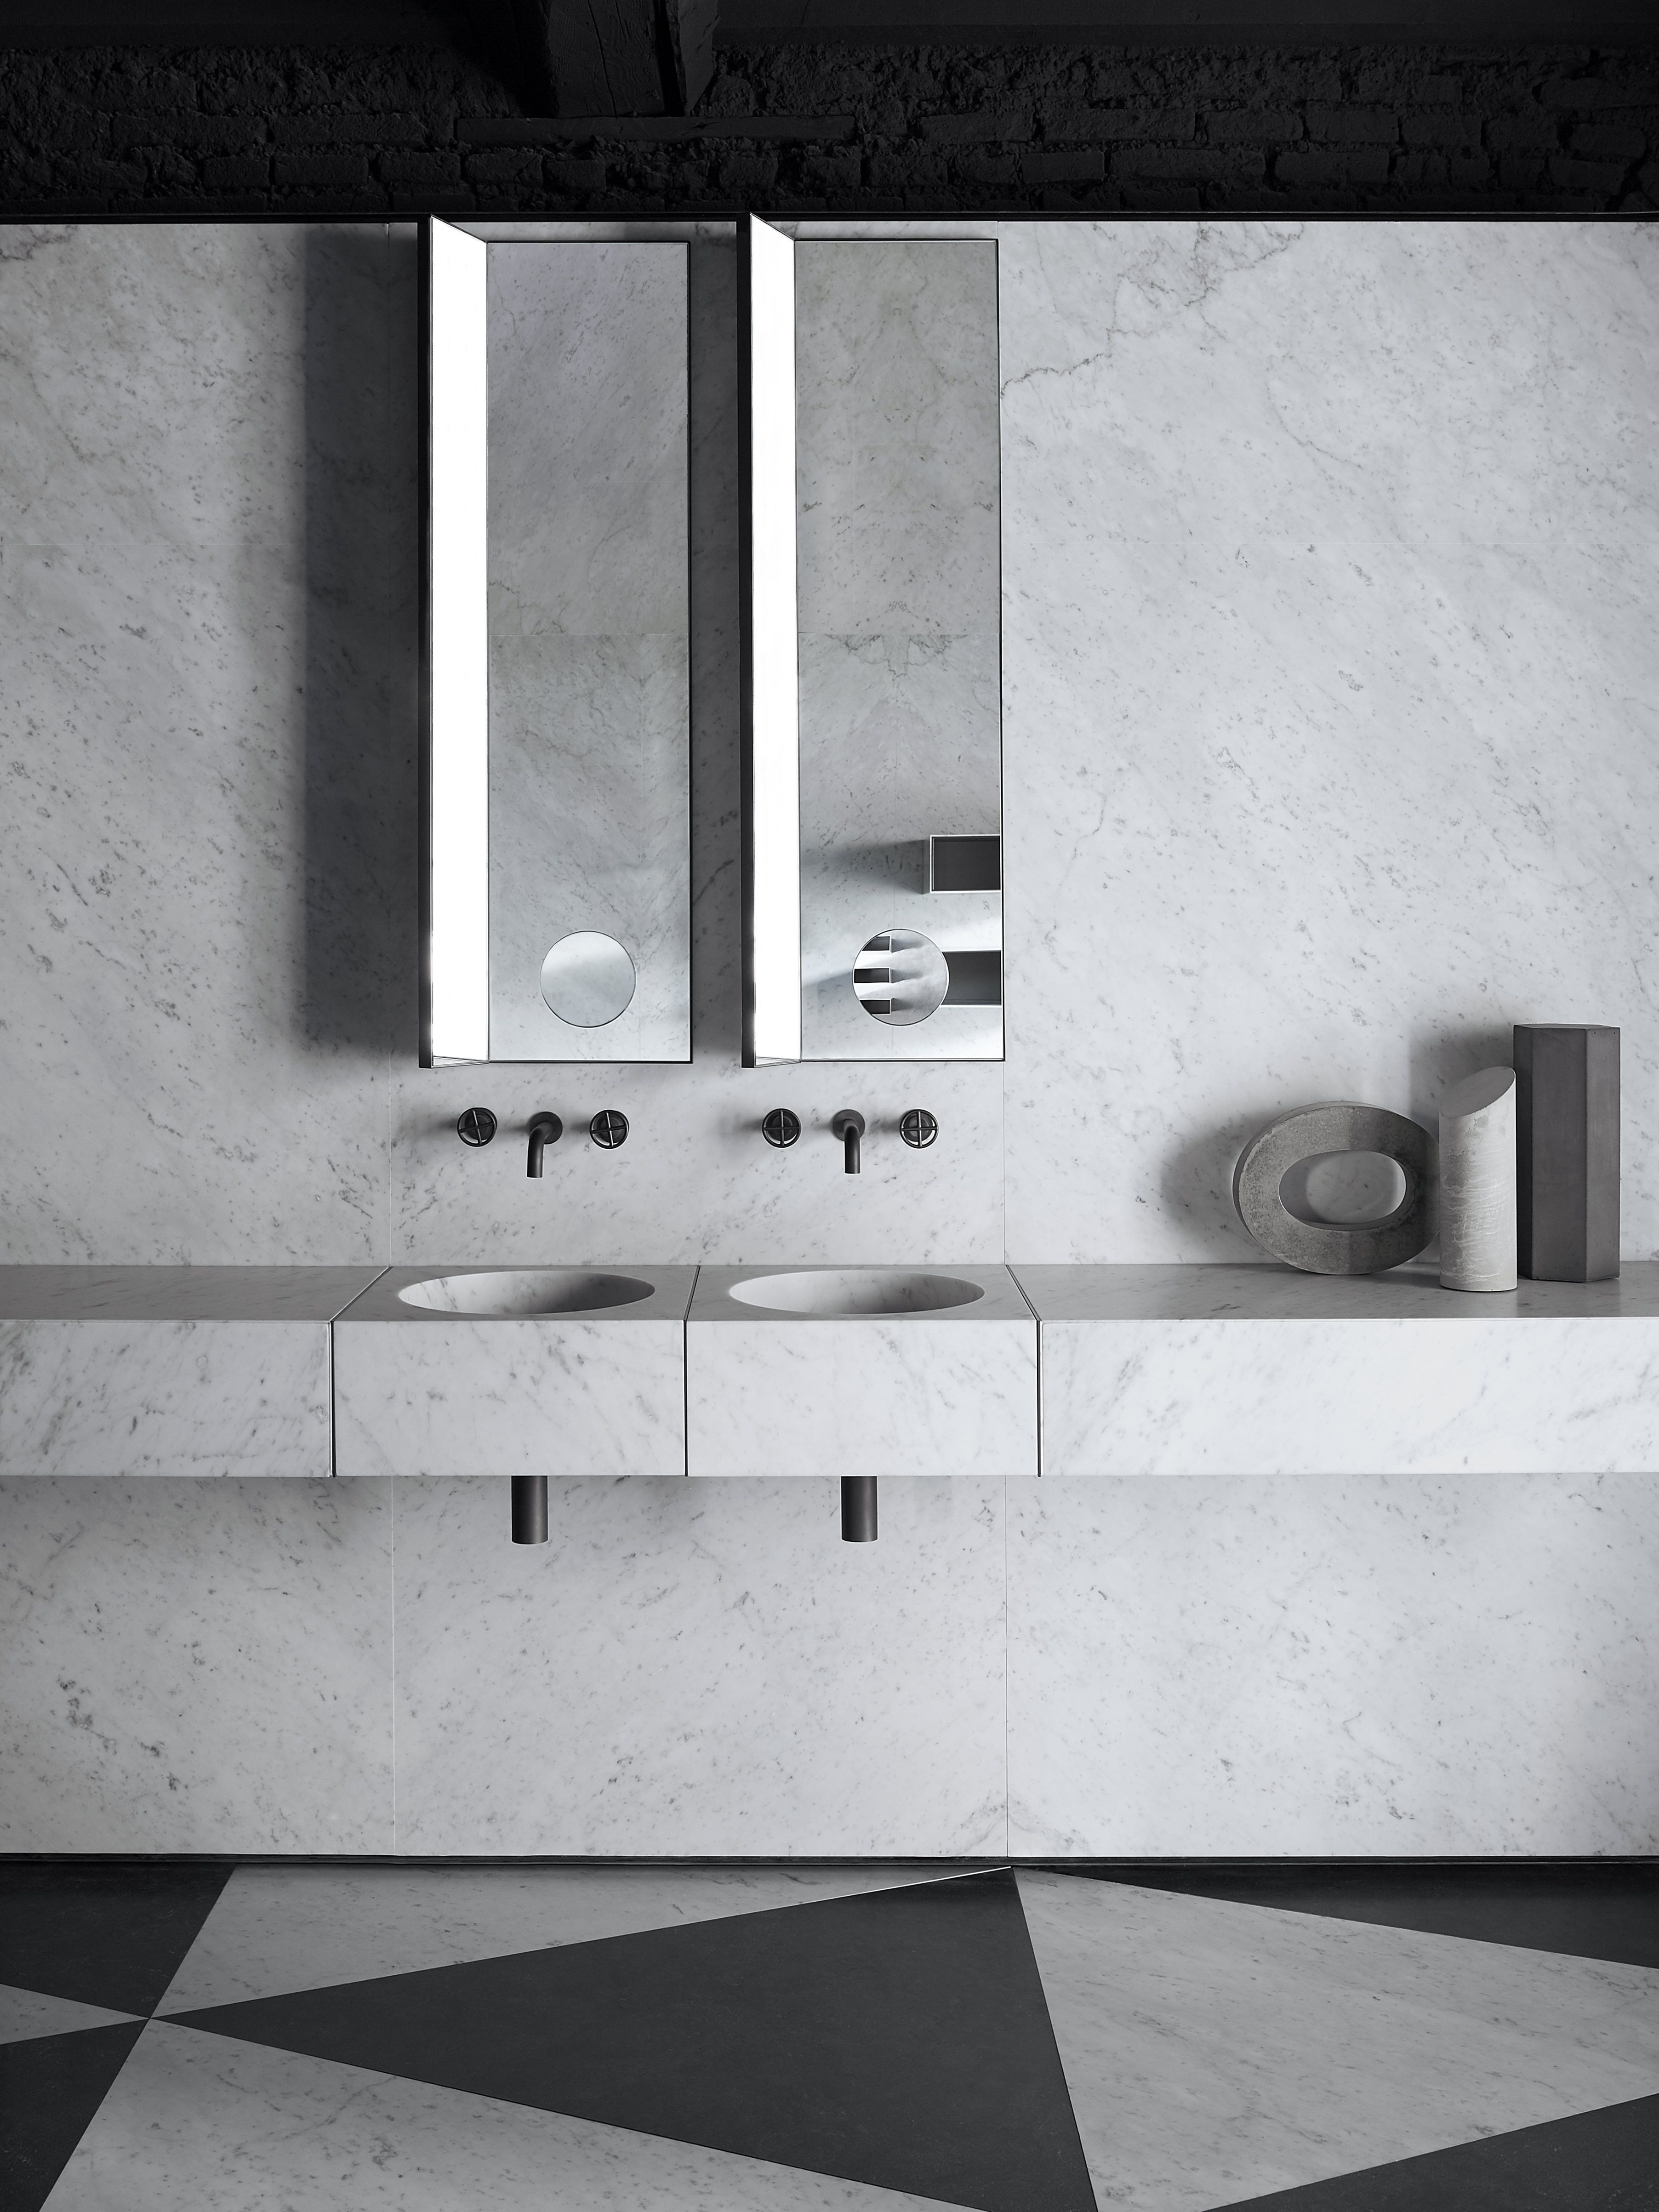 Lavabo Integrato Lavabo Alfeo Bathrooms Pinterest Baños Y Baño